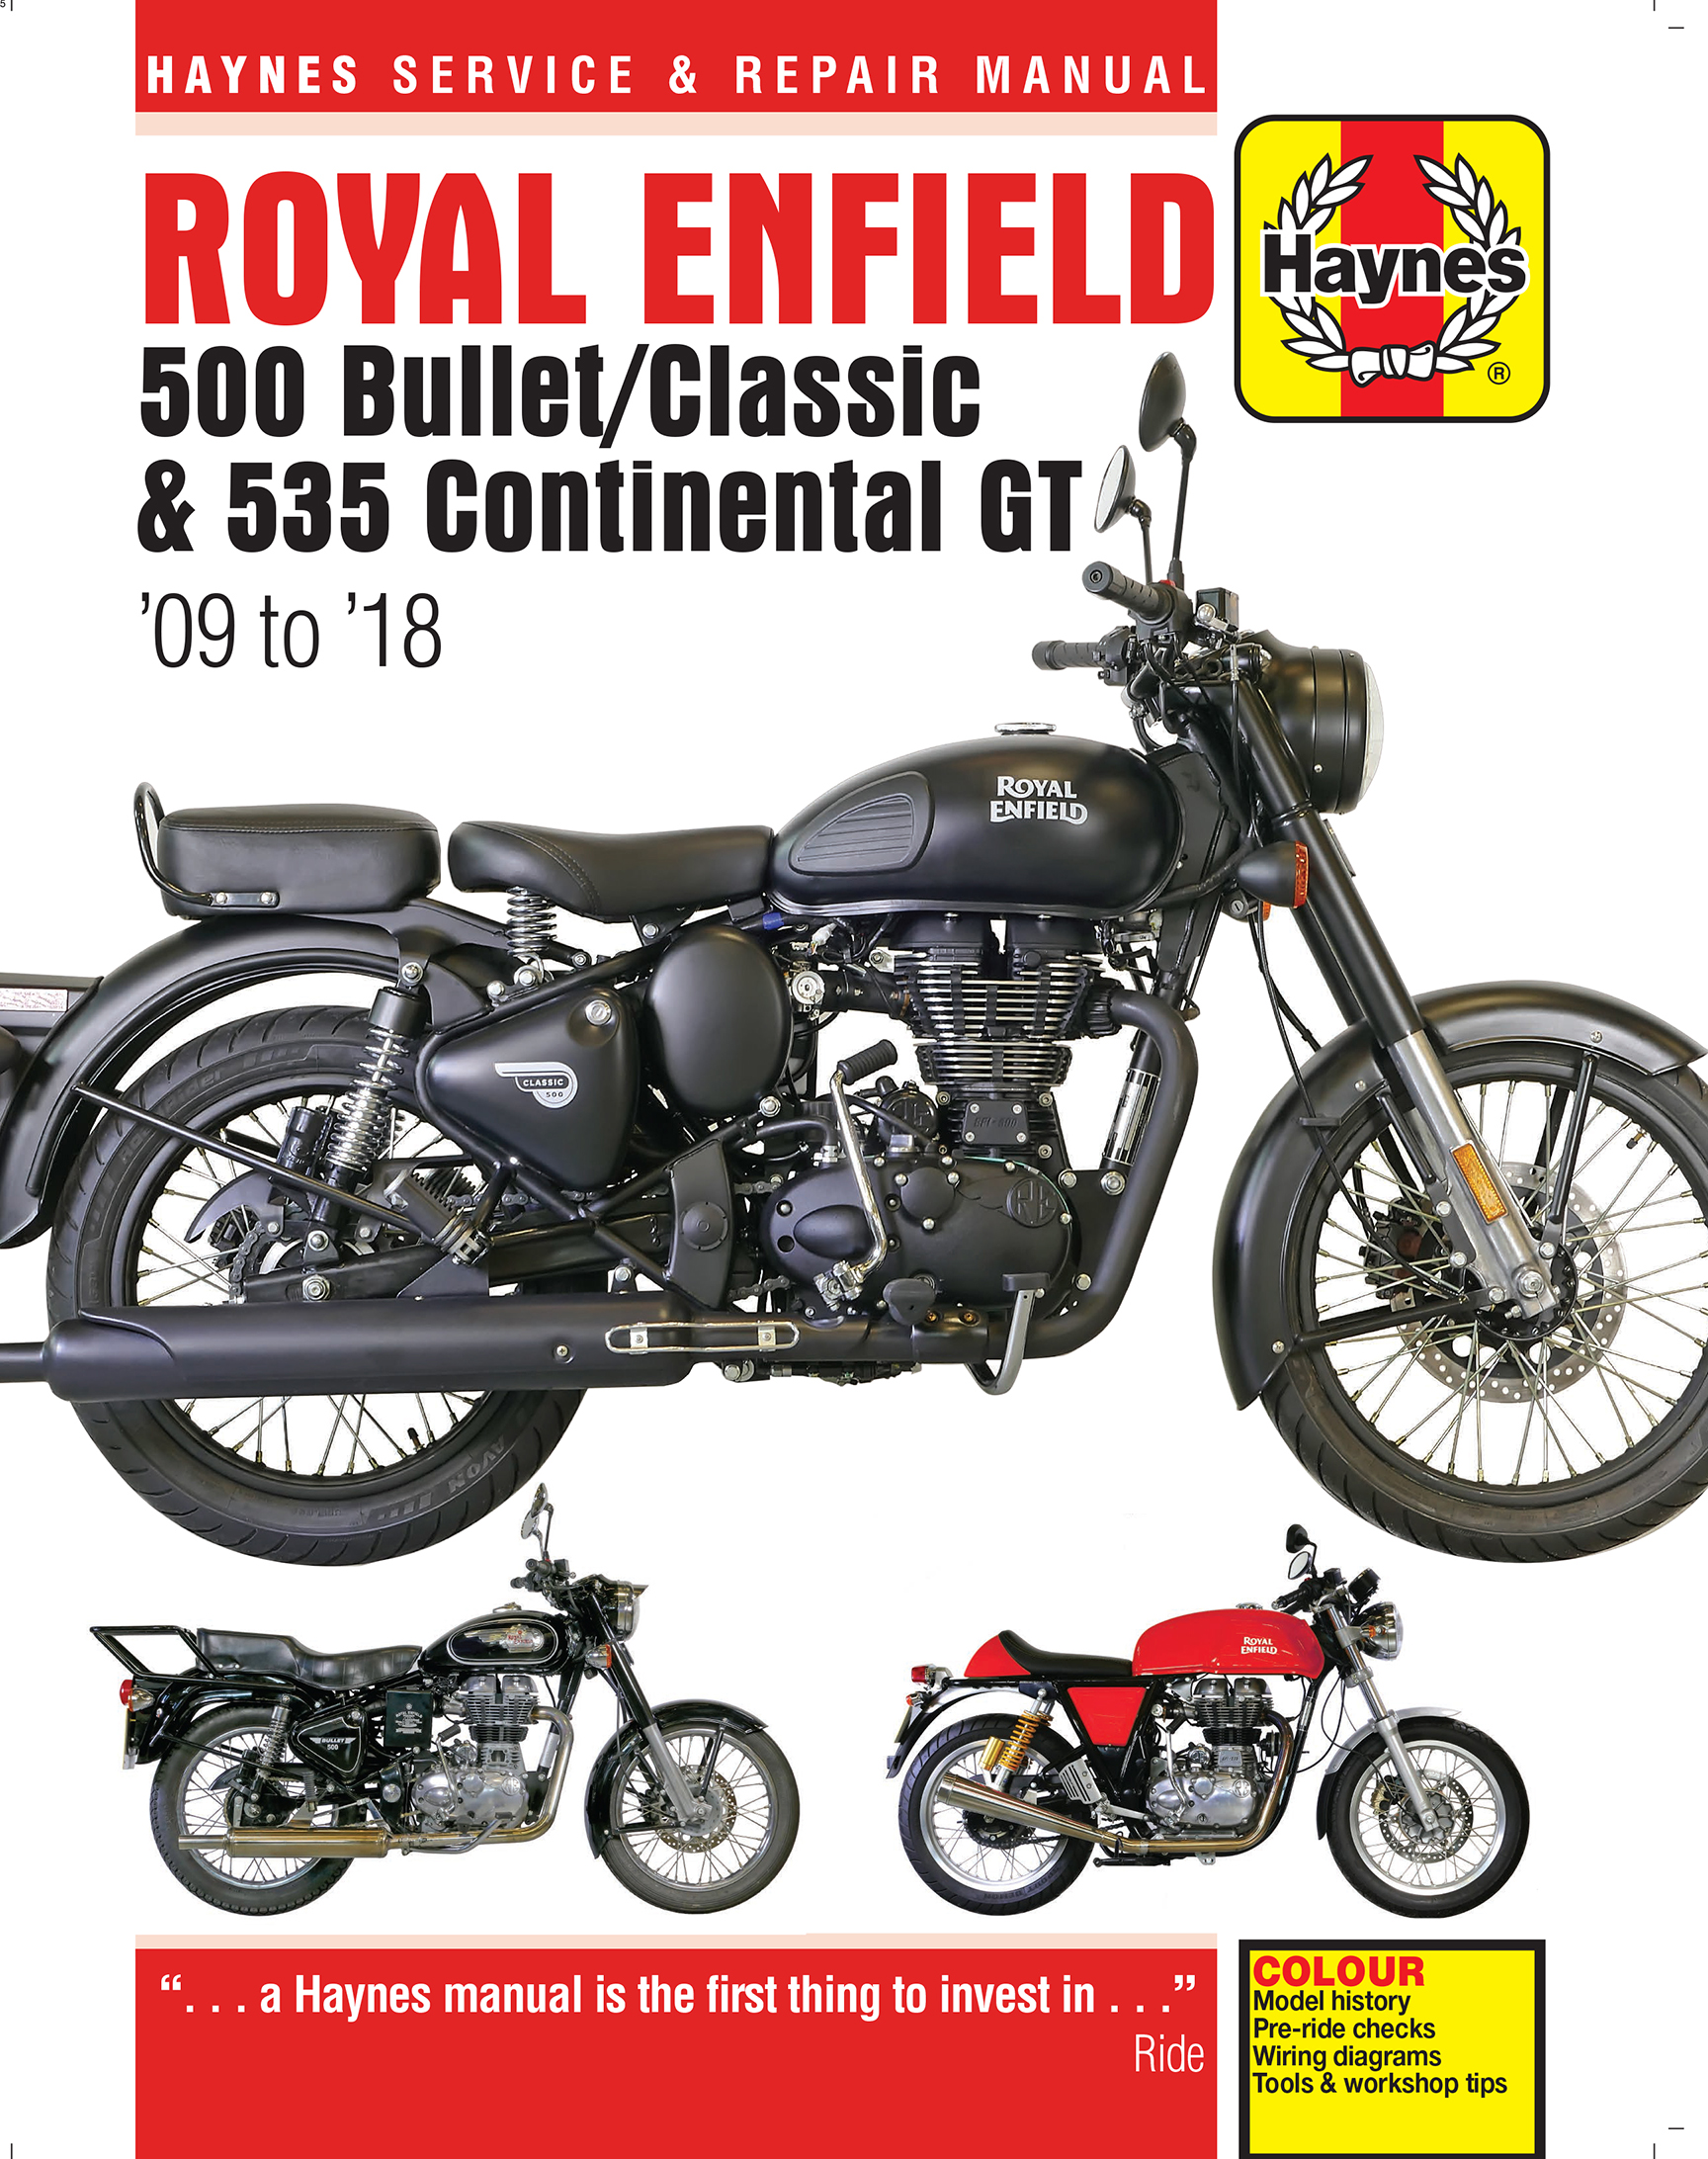 Royal_Enfield_500_BulletClassic_&_535_Continental_GT_0918_Haynes_Repair_Manual